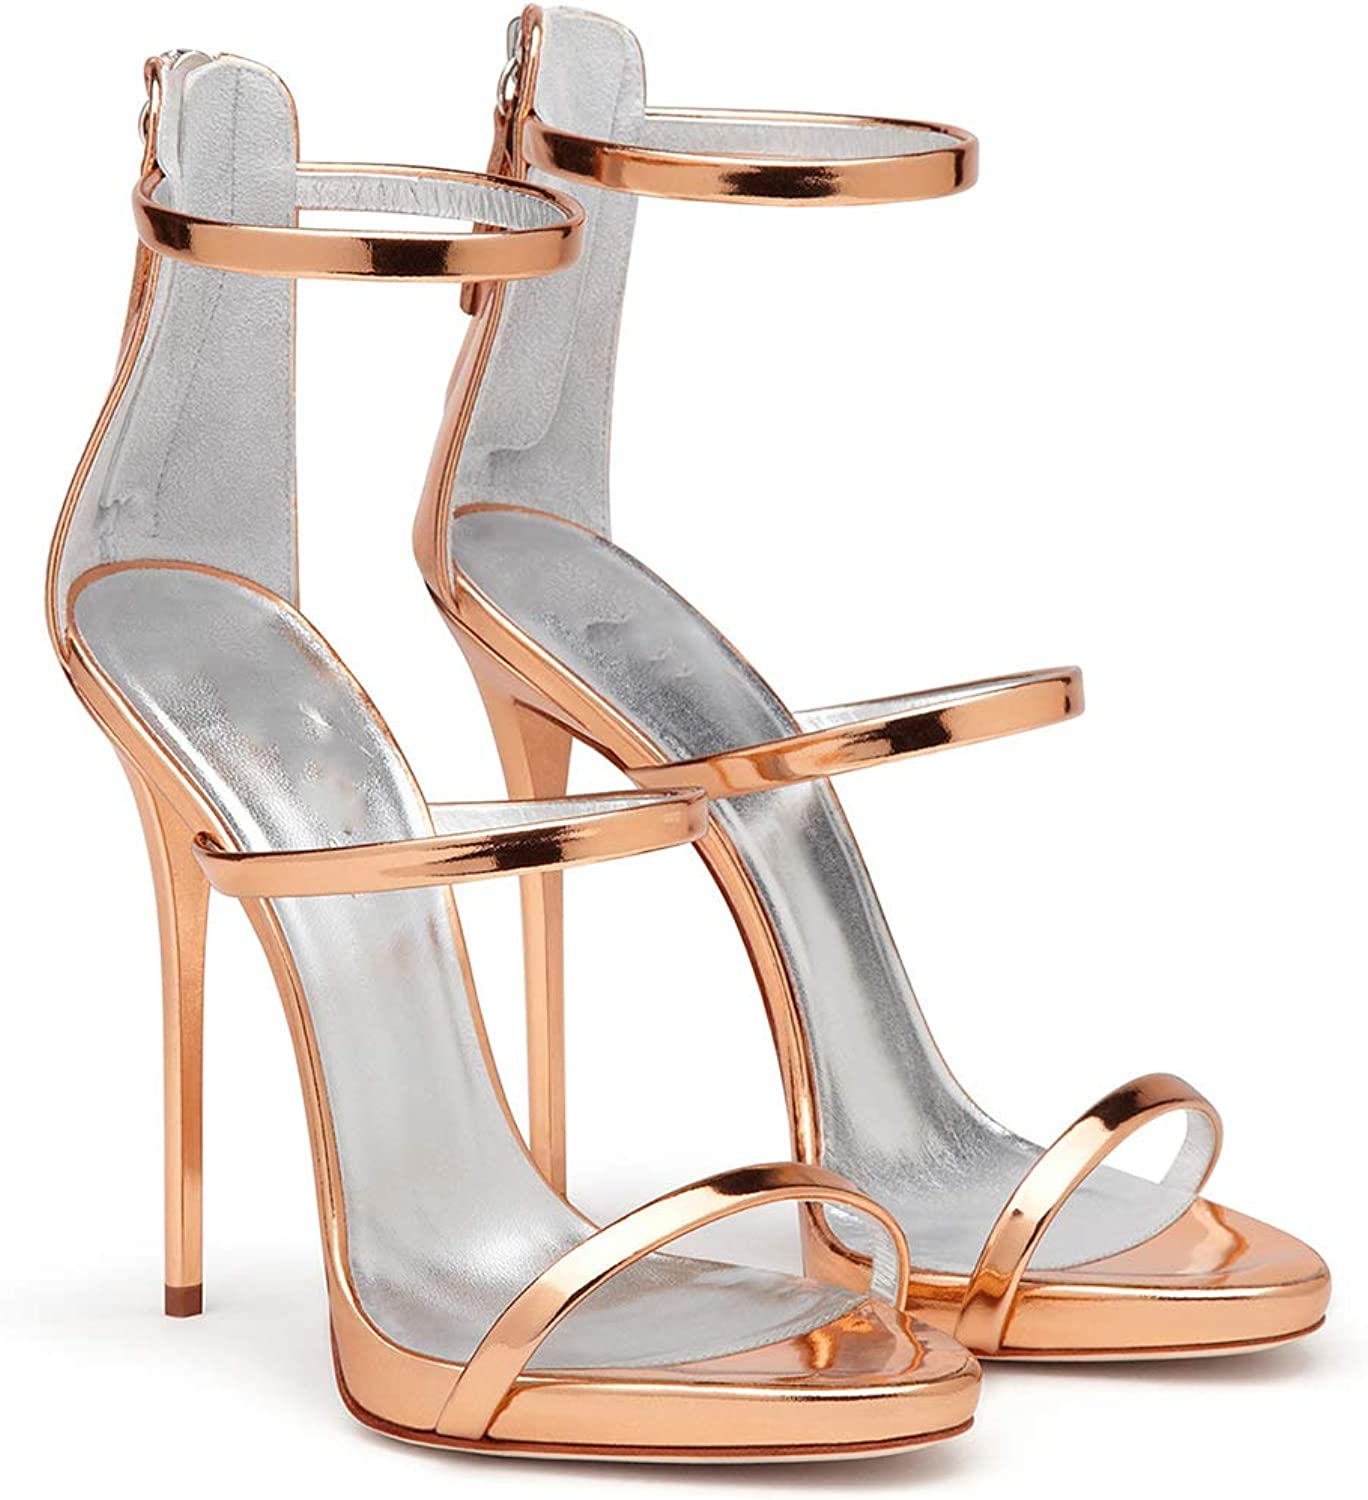 ENDJYO High Heel Sandals Womens Strappy Sandals Suitable for Dating Everyday